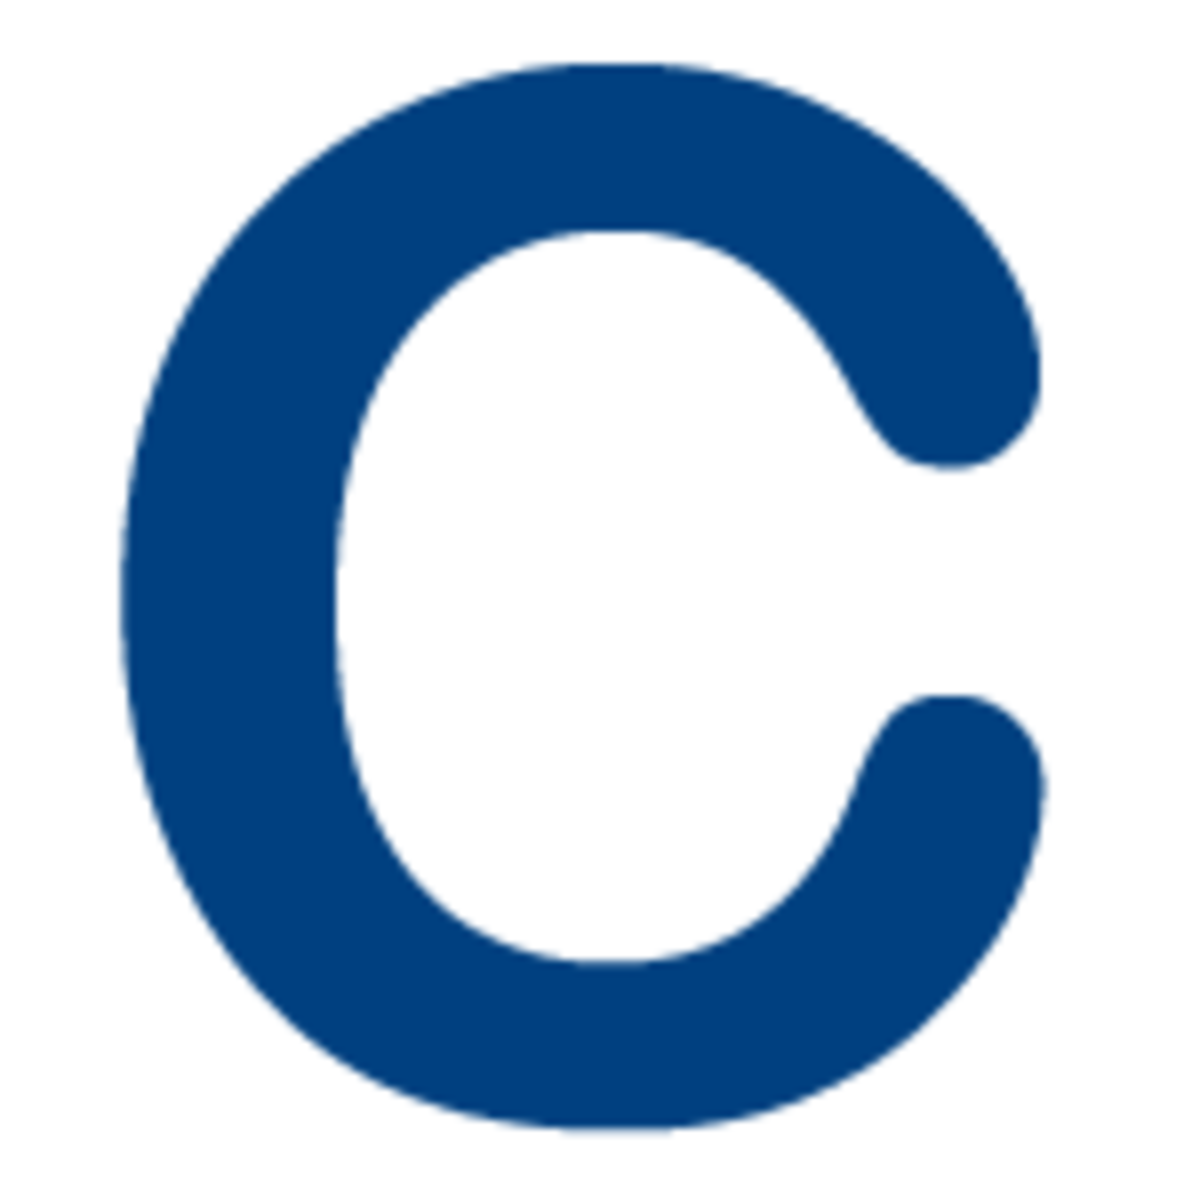 C is for certain